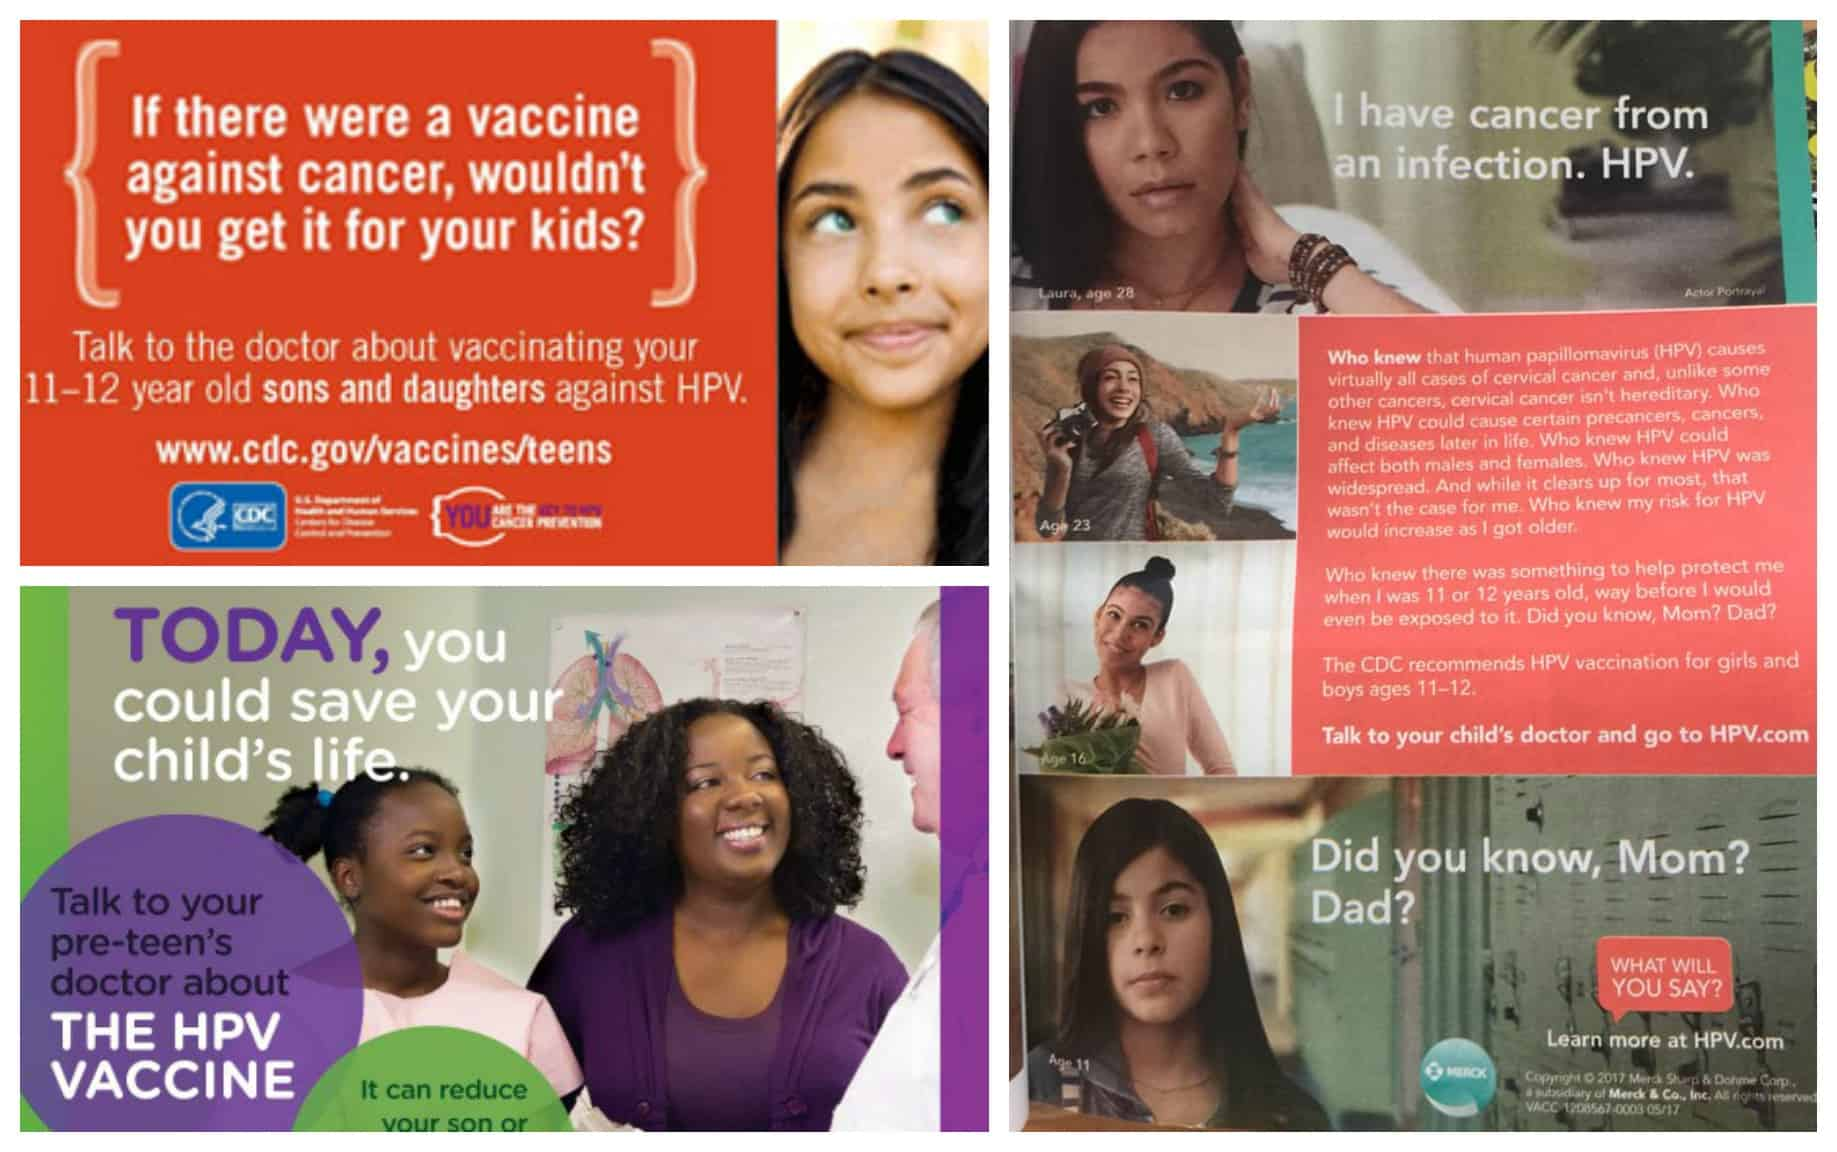 Pap Smear Amnesia: Pap Smear Proven Track Record for HPV Diseases. HPV vaccine ads guilting parents